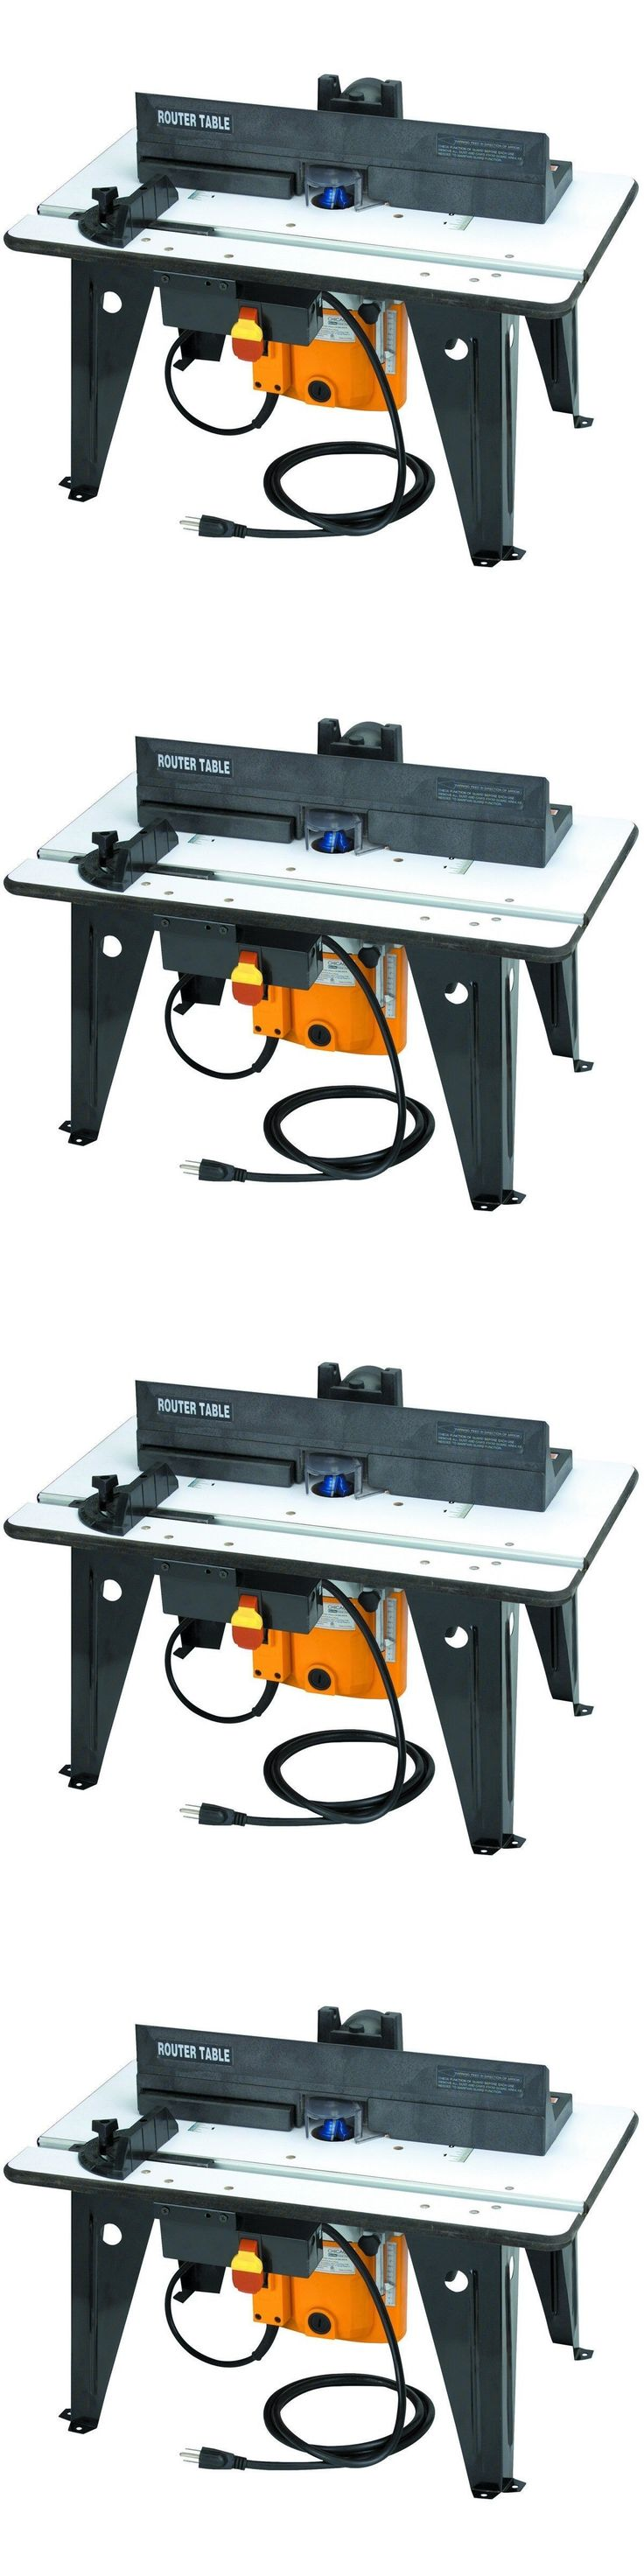 Tools 40 102 promax cast iron router table extension free shipping - Router Tables 75680 New Bench Top Router Table With 1 3 4 Hp